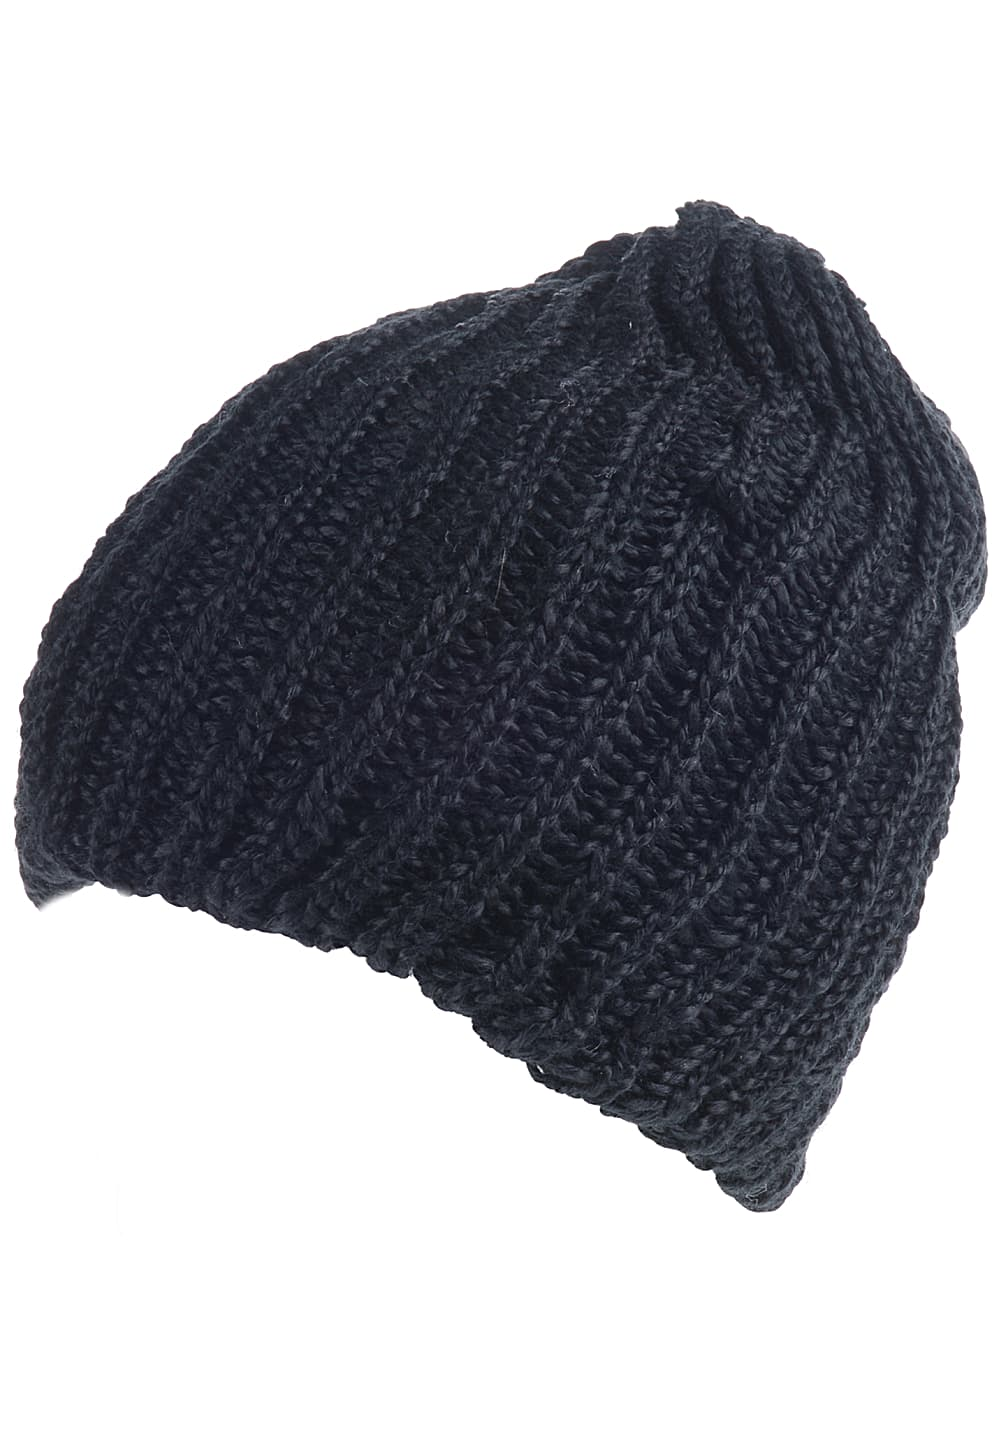 Bonnet pour Femme Coal The Thrift Knit Noir